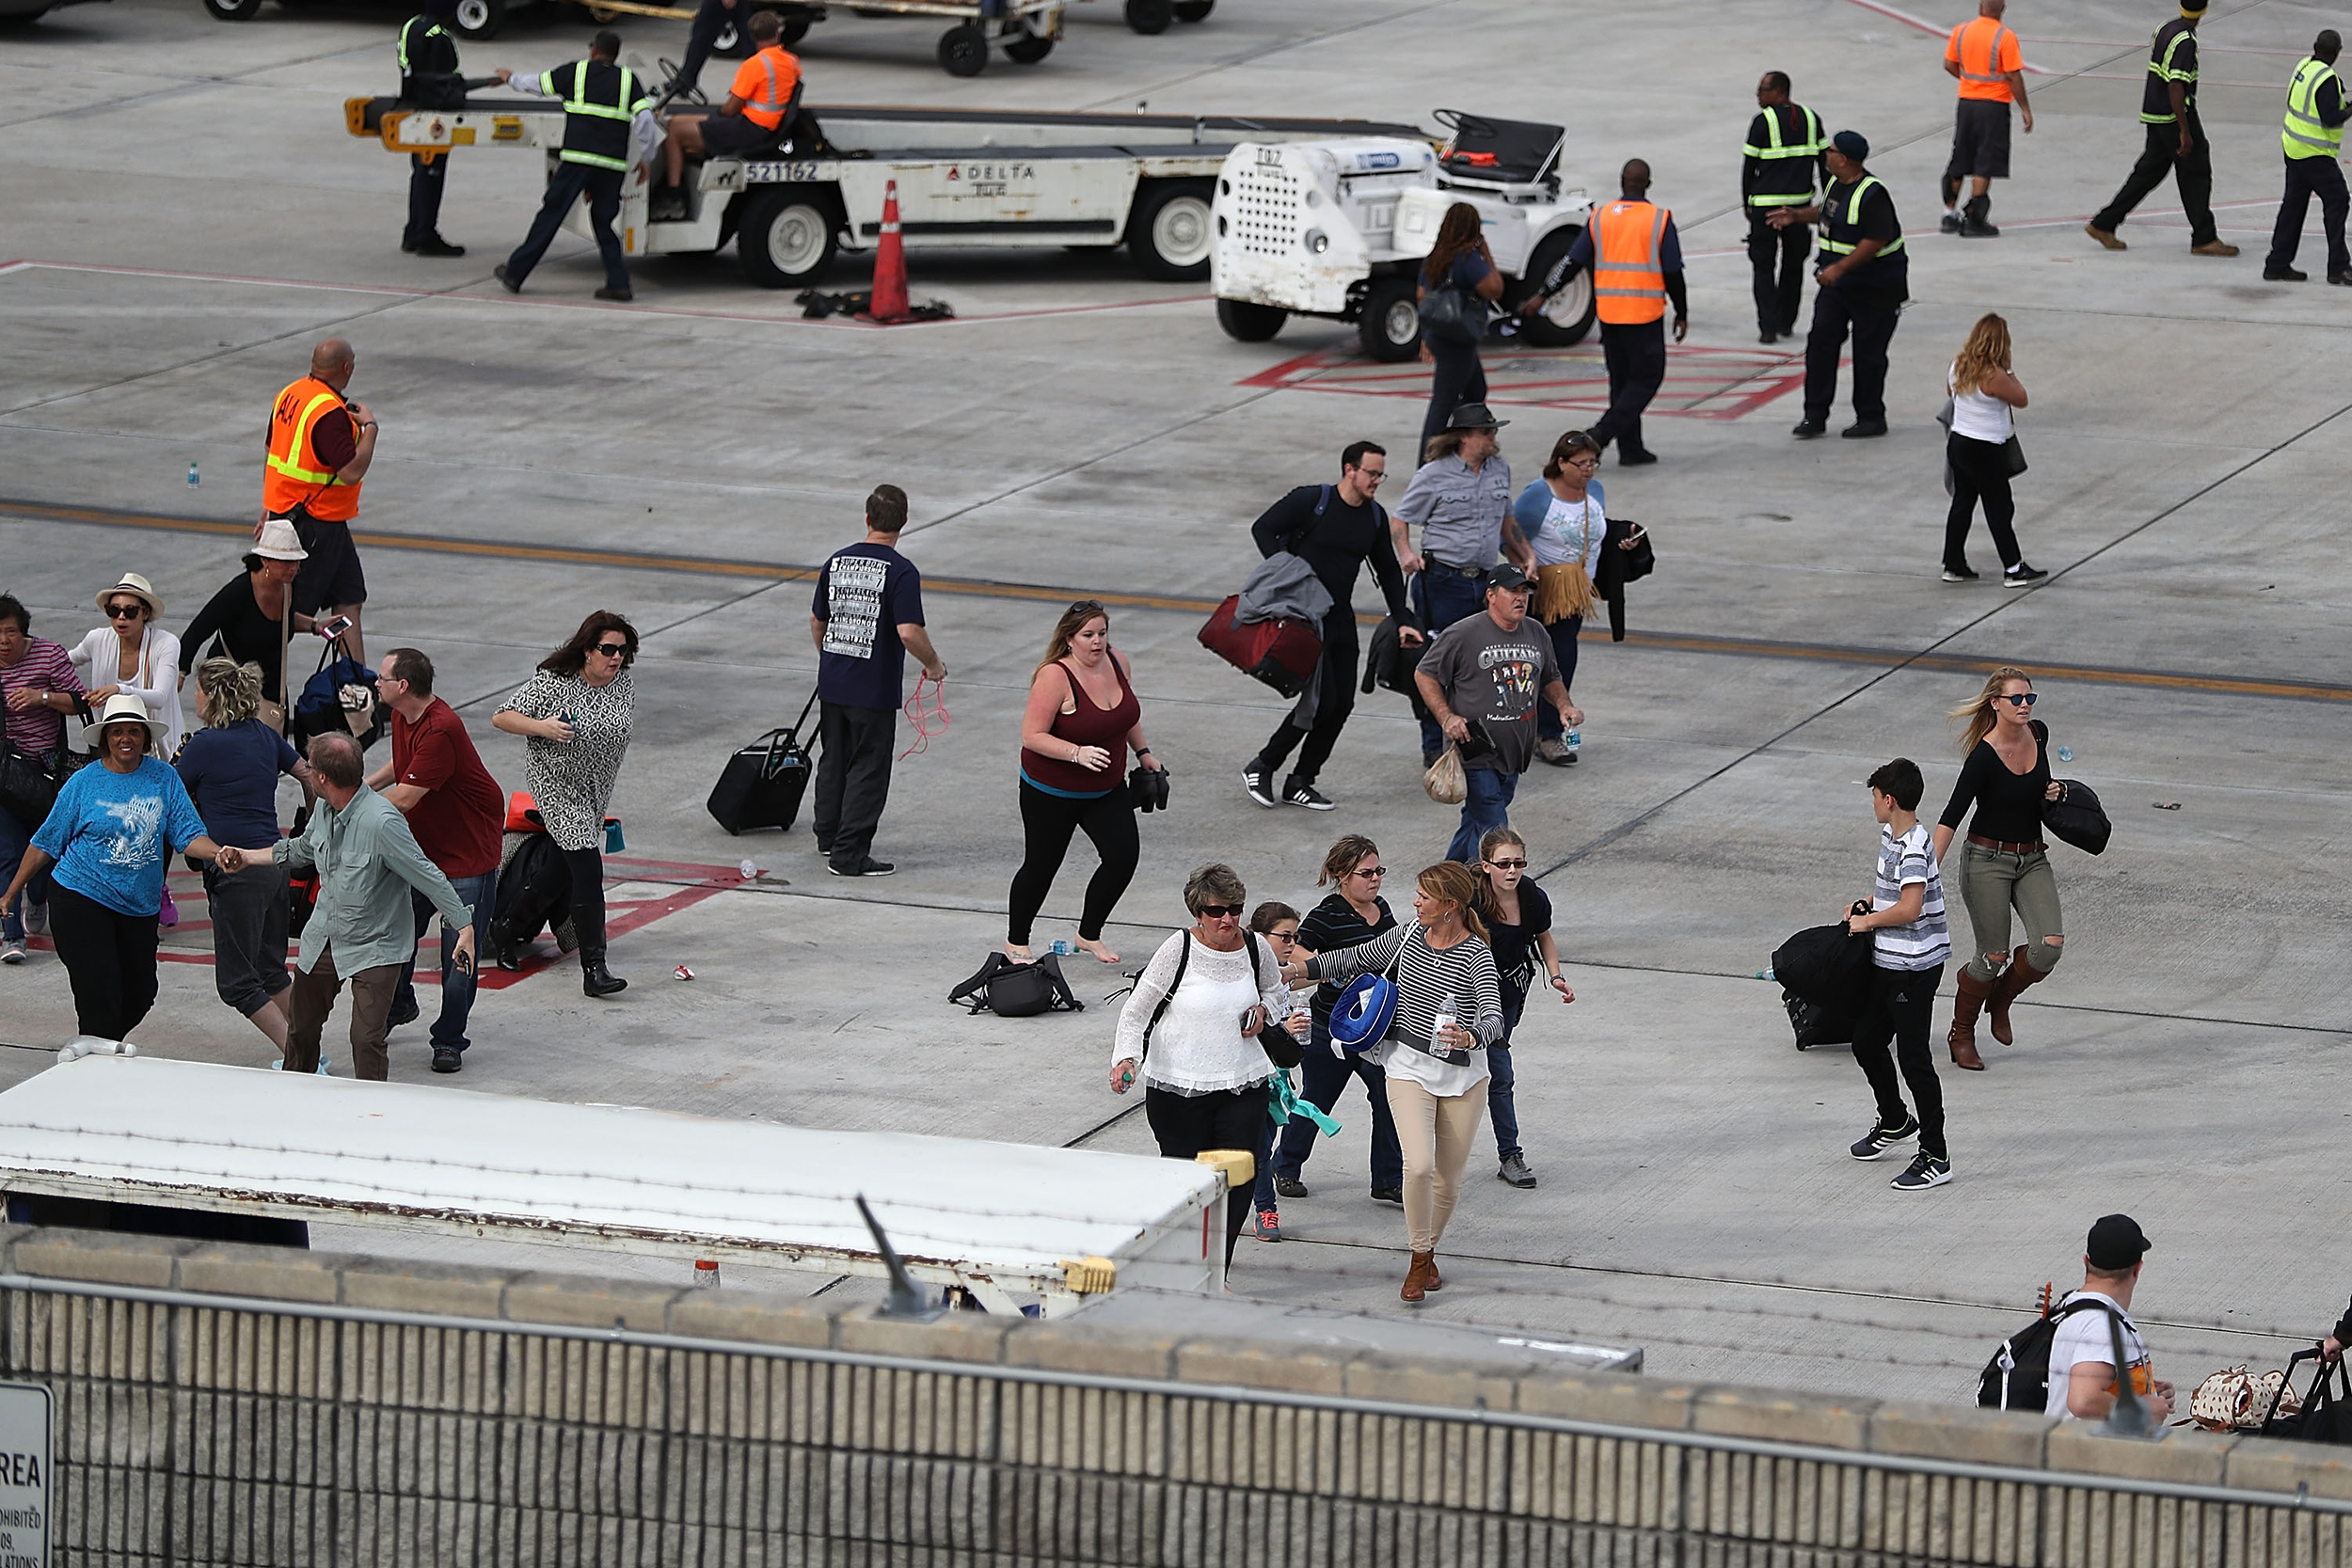 Travelers should know: Few airport workers have emergency training